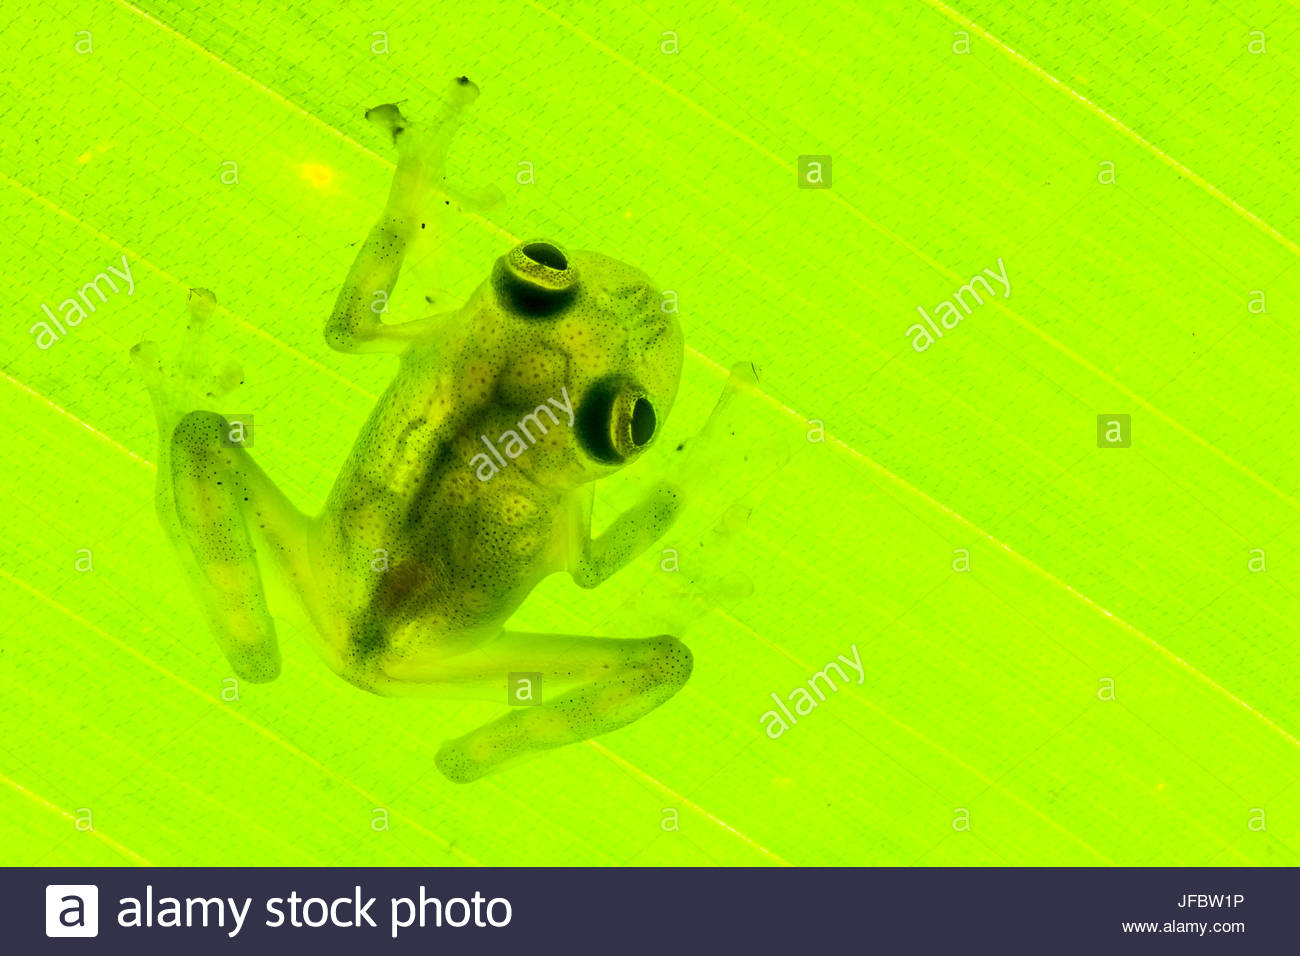 A backlit cricket glass frog, Hyalinobatrachium colymbiphyllum, on a leaf. - Stock Image